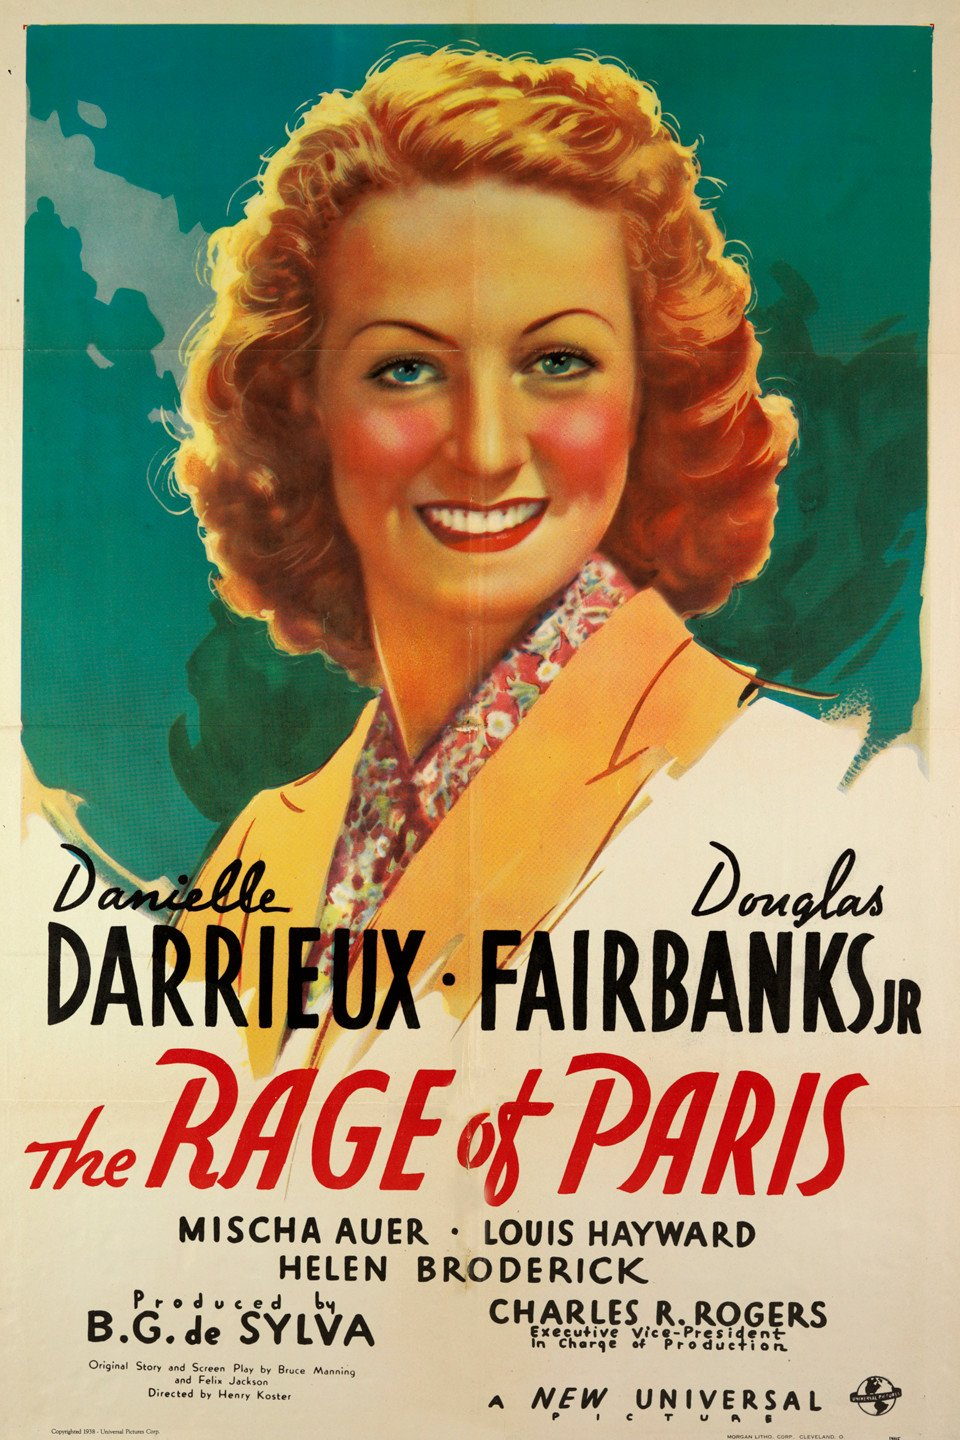 Danielle Darrieux in The Rage of Paris (1938)